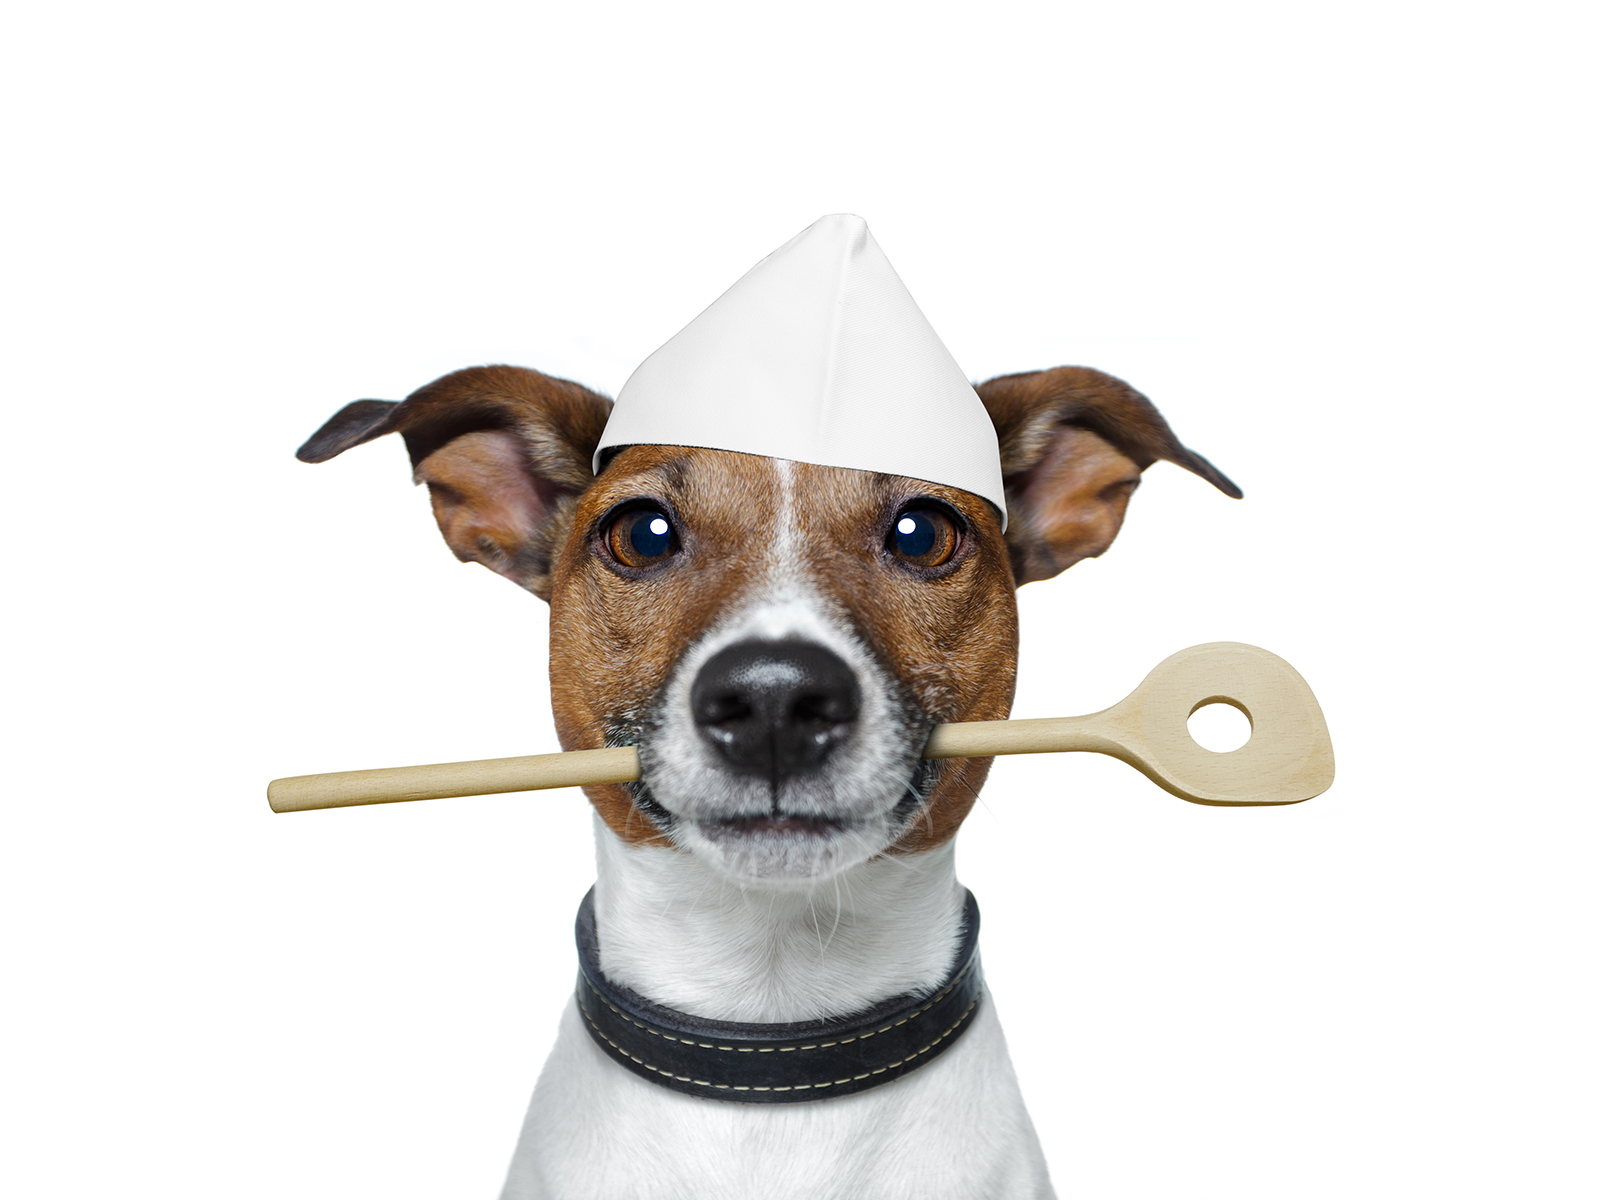 A cut dog is posed holding a wooden spoon in his mouth. He is ready to make his own dog food!